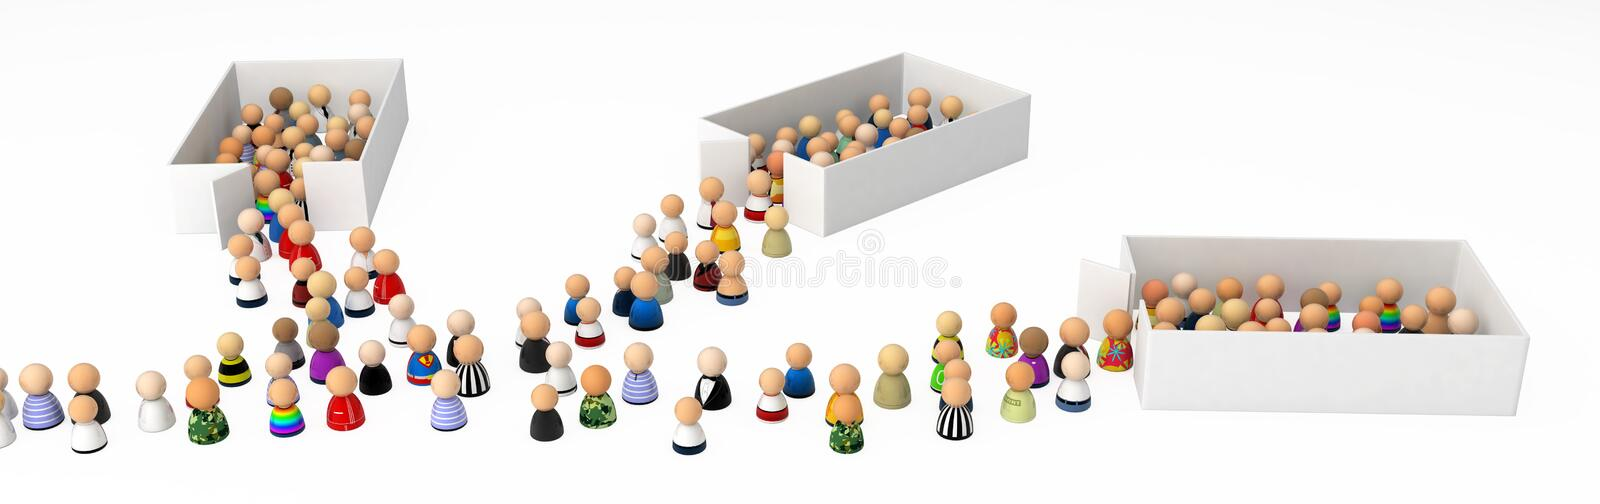 Download Cartoon Crowd, Pour Out stock illustration. Image of cartoon - 12232267